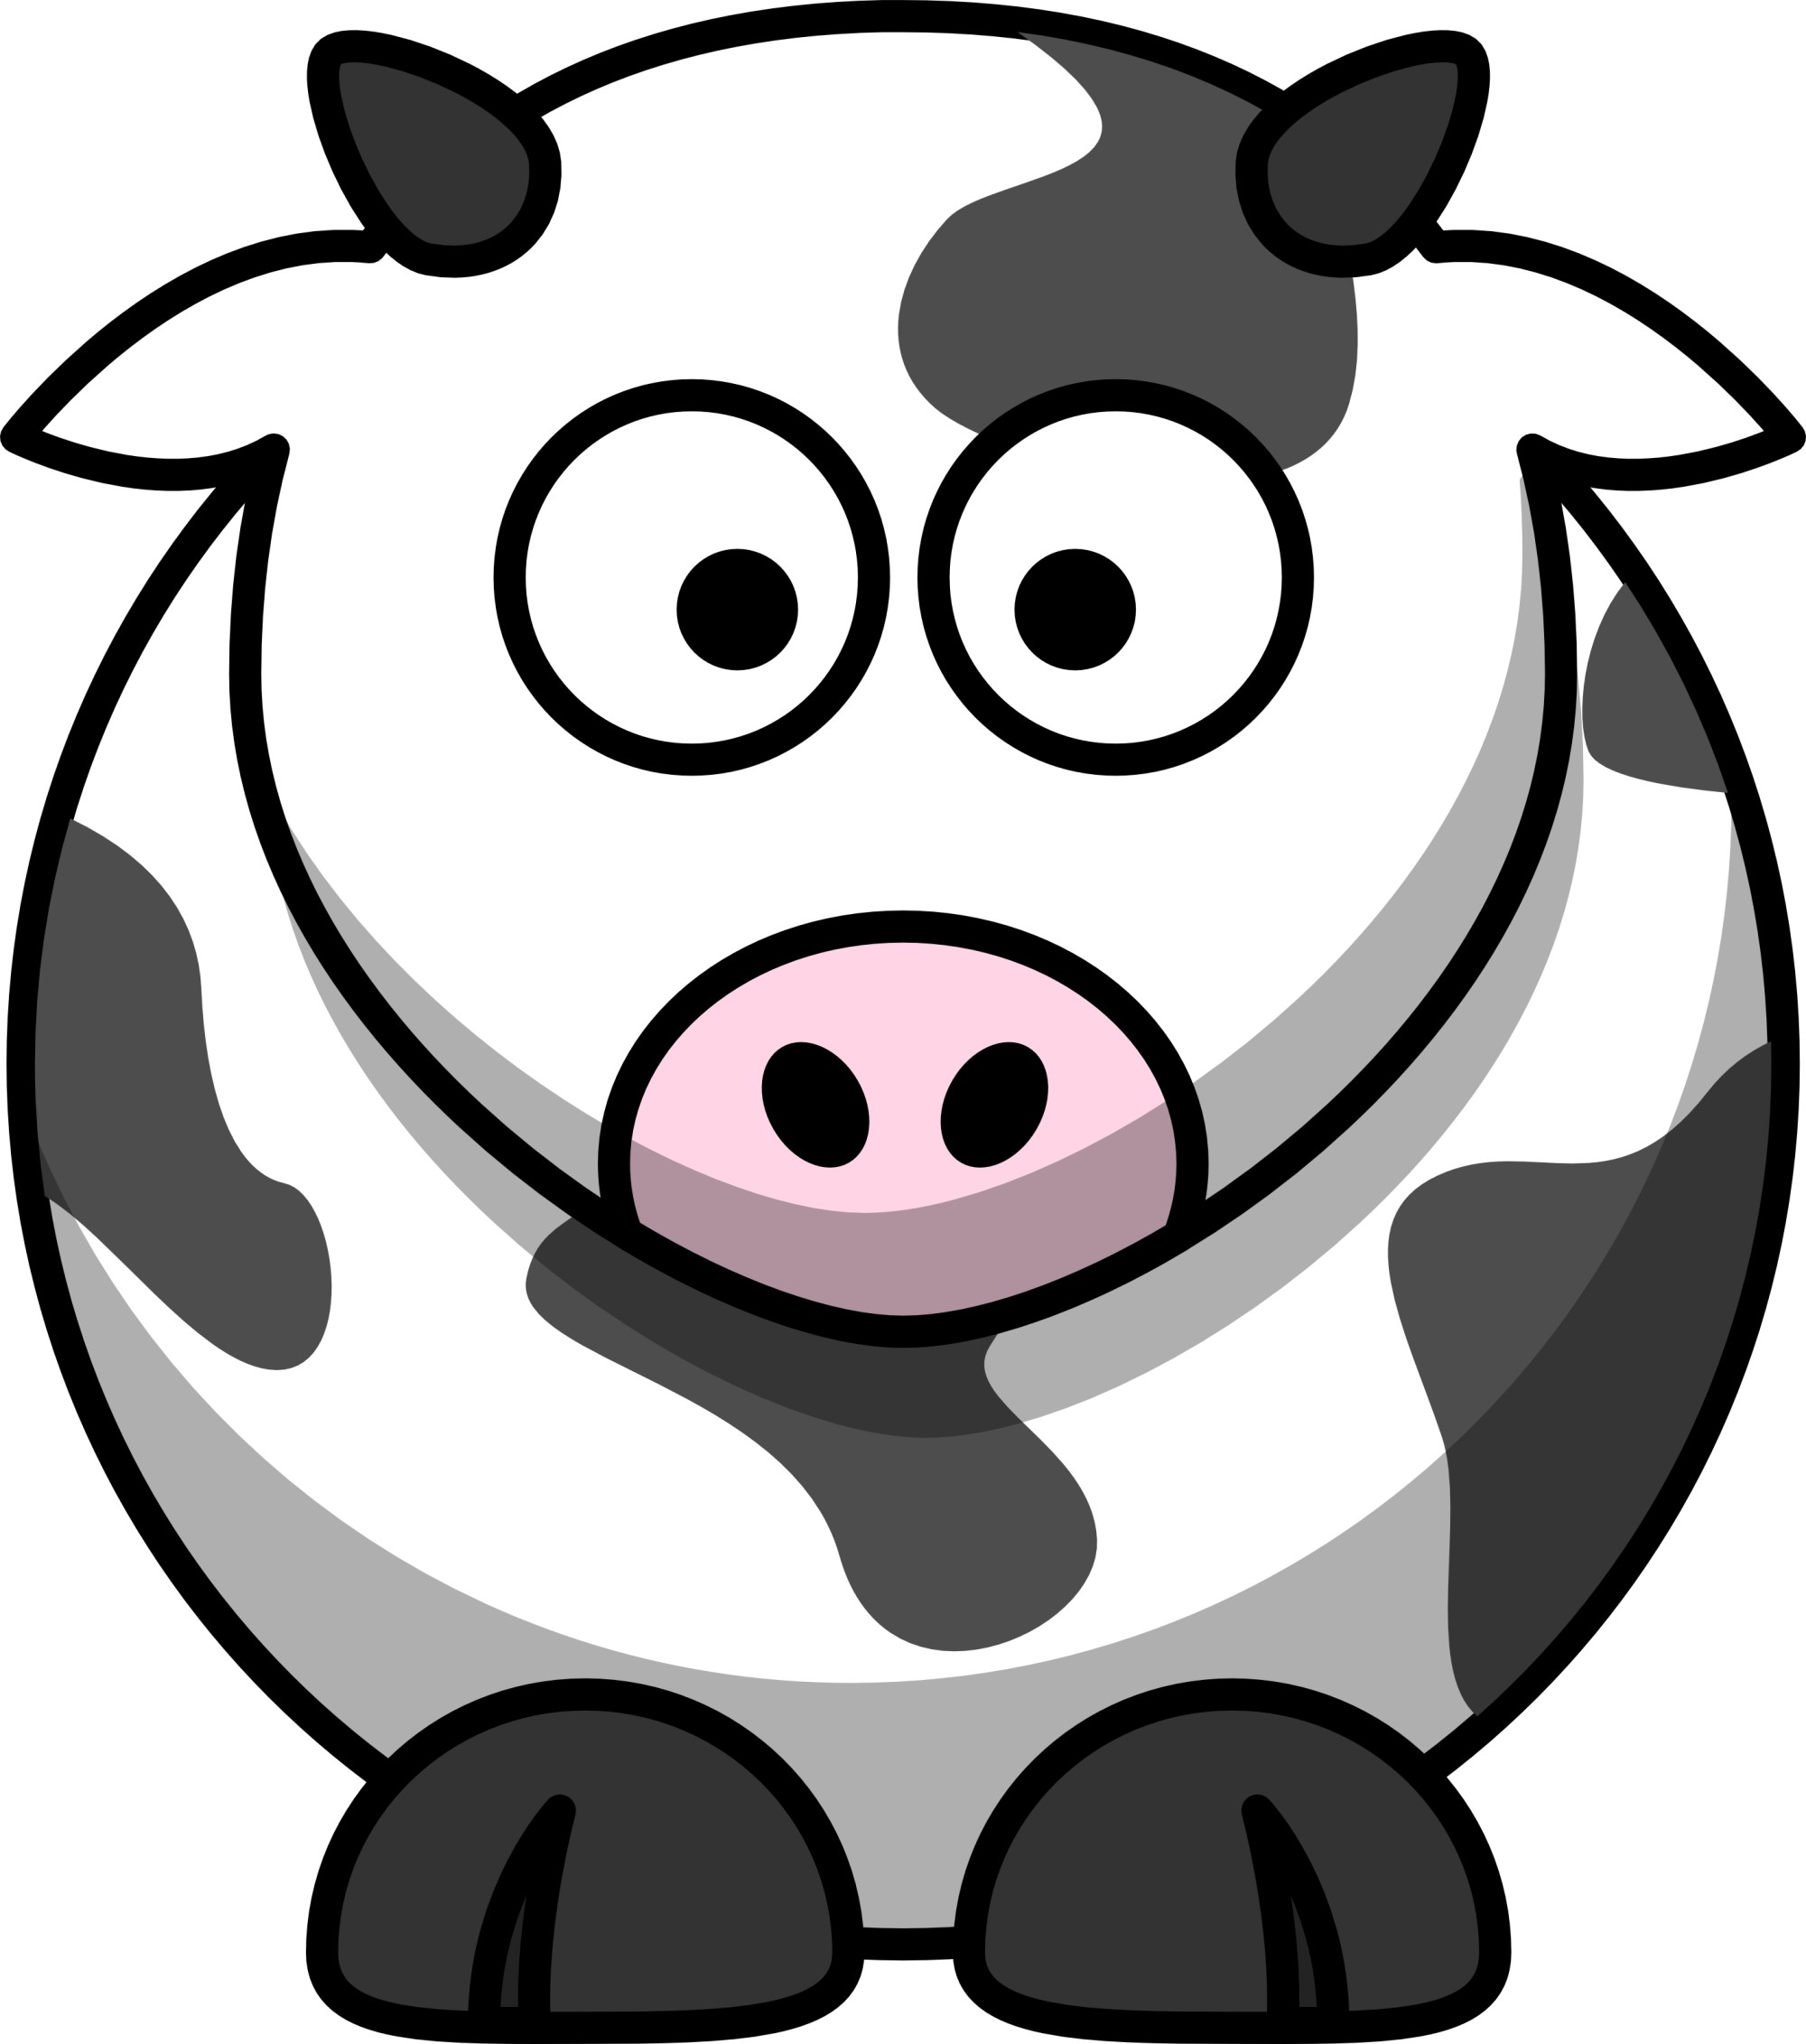 hight resolution of image 49 free cartoon cow clip art jpg